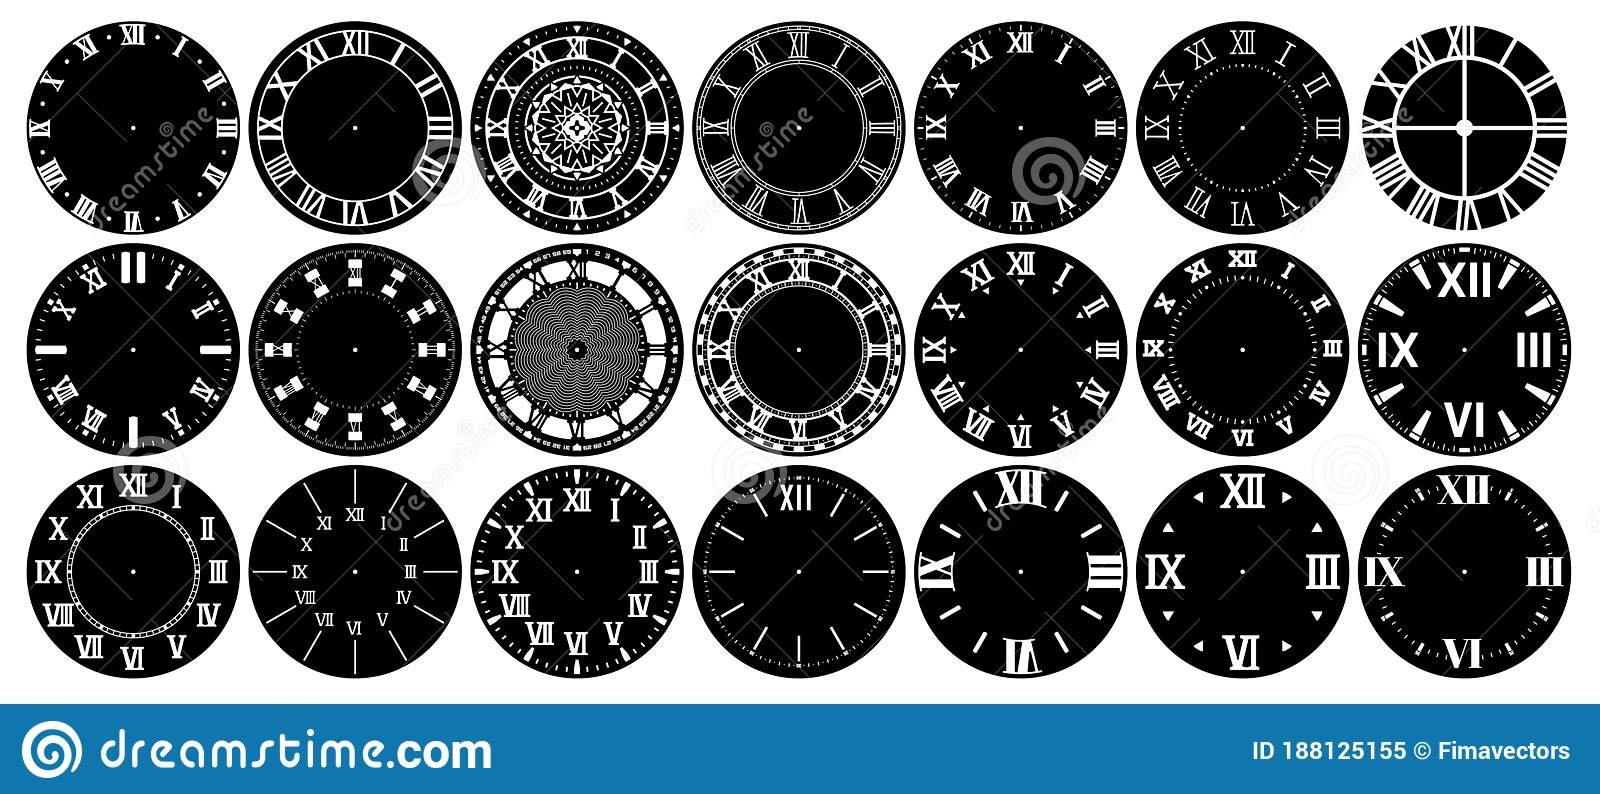 Clock Faces Old Stock Illustrations 34 Clock Faces Old Stock Illustrations Vectors Clipart Dreamstime